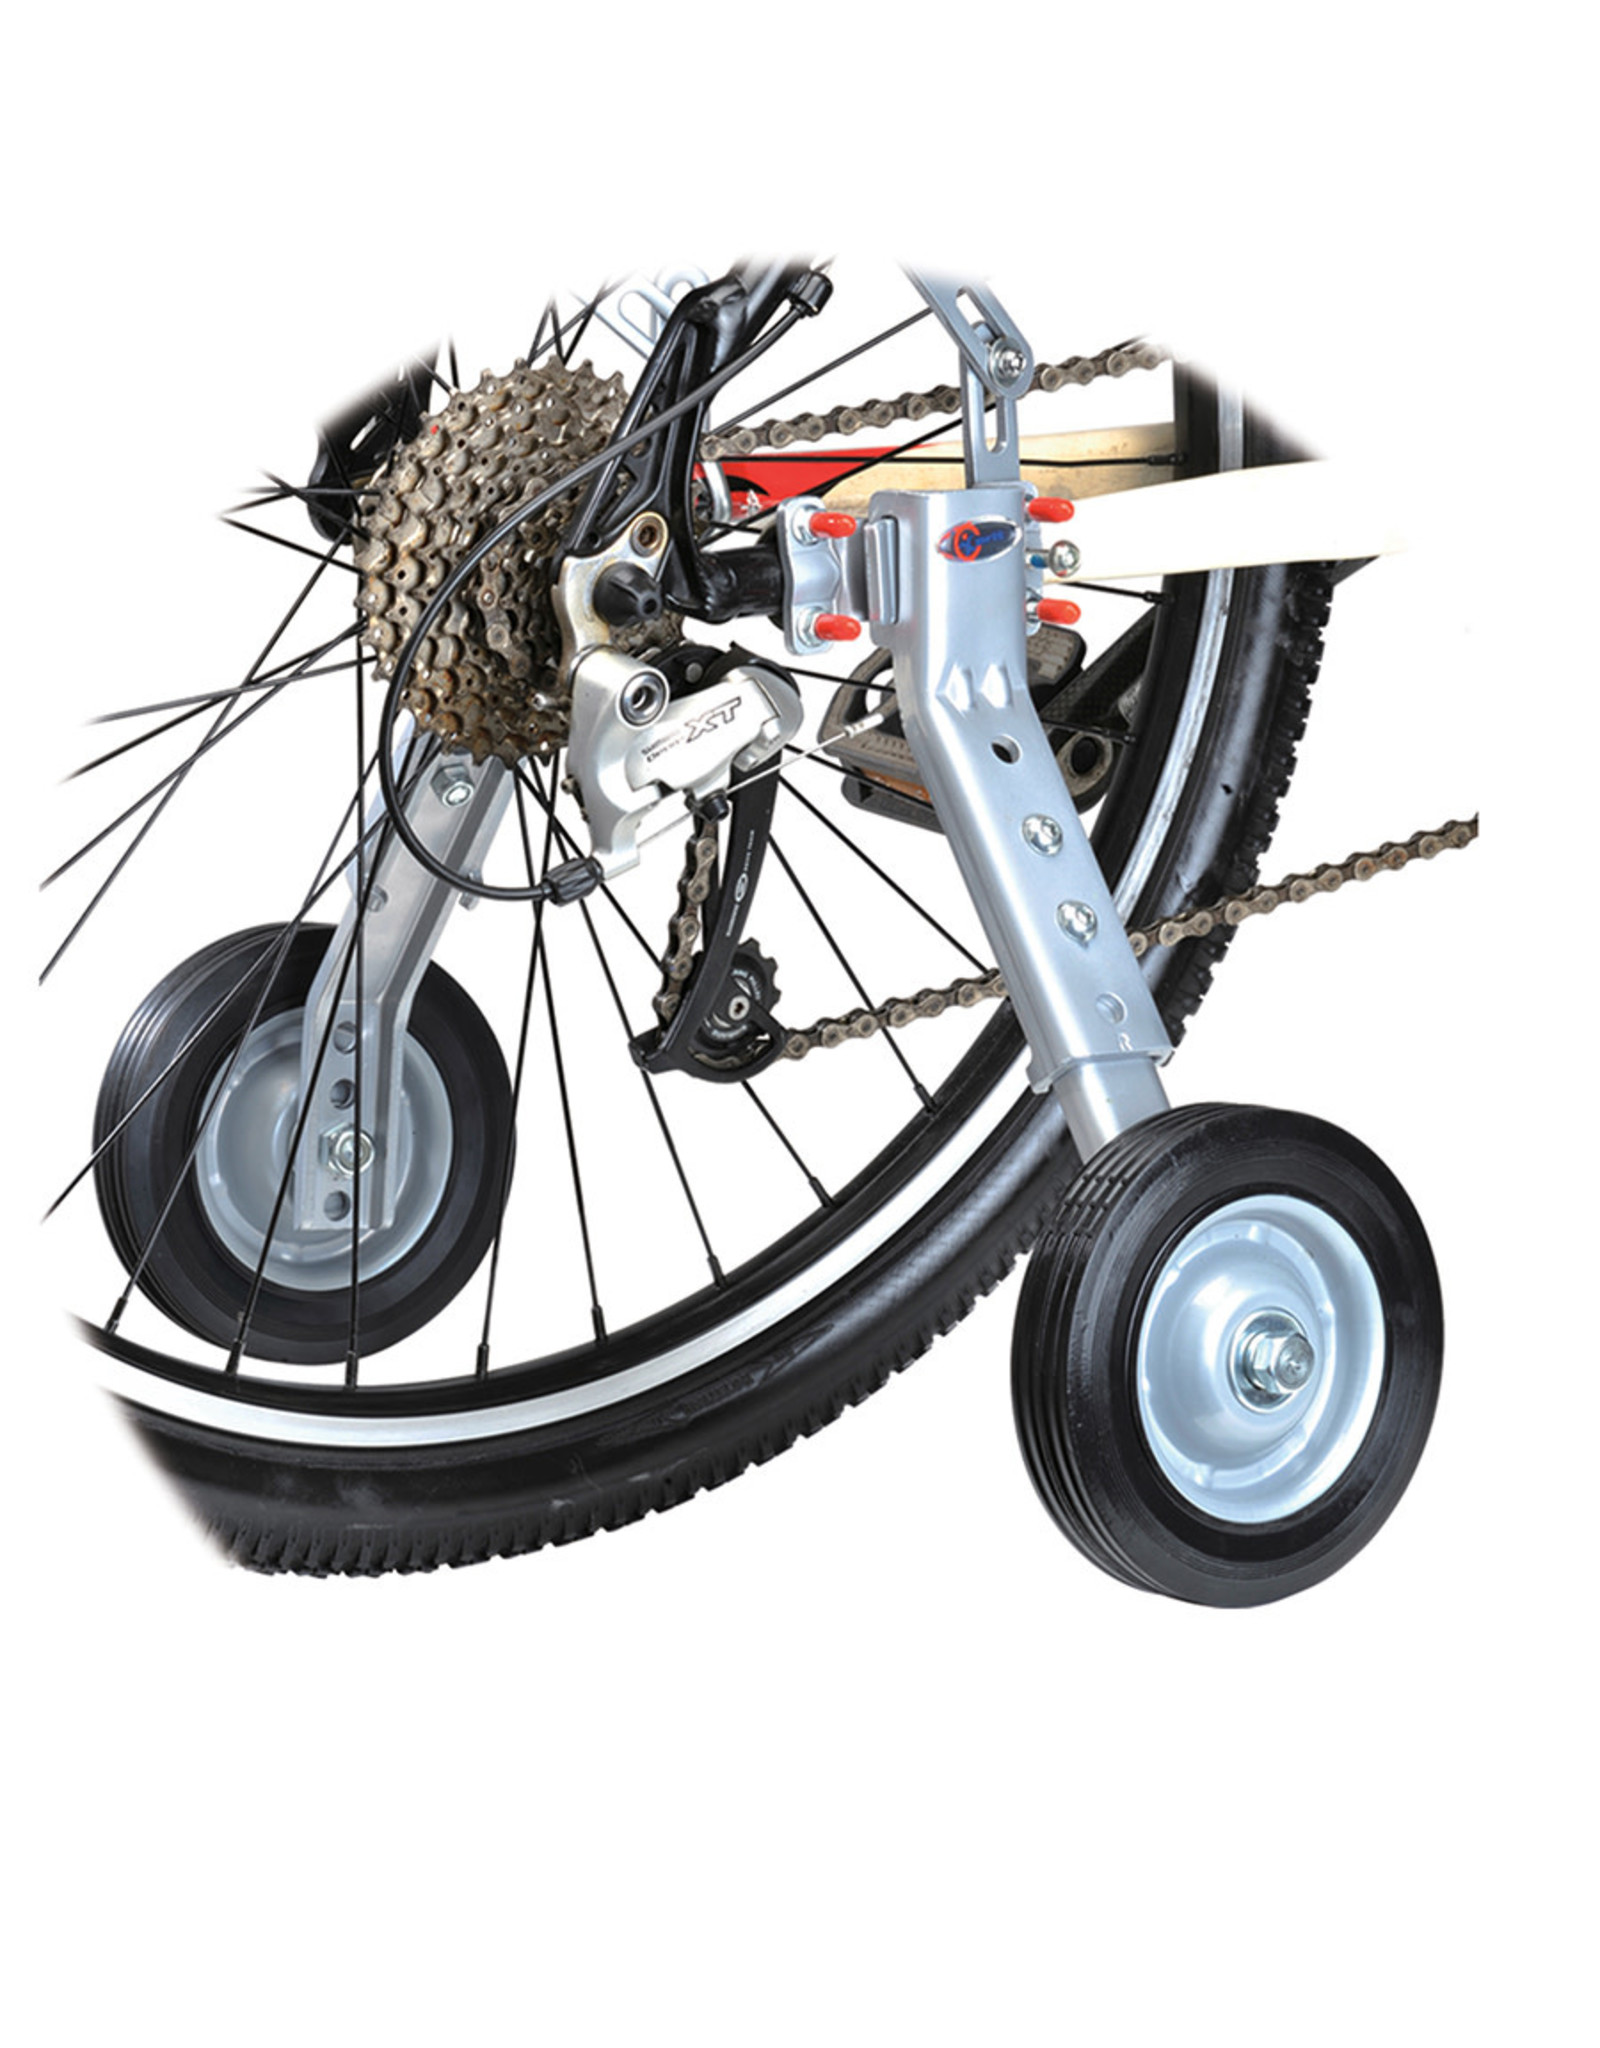 EVO, Mobility Multi-Fit, Training wheels, Fits 24'' to 700C, Maximum rider weight 200lbs